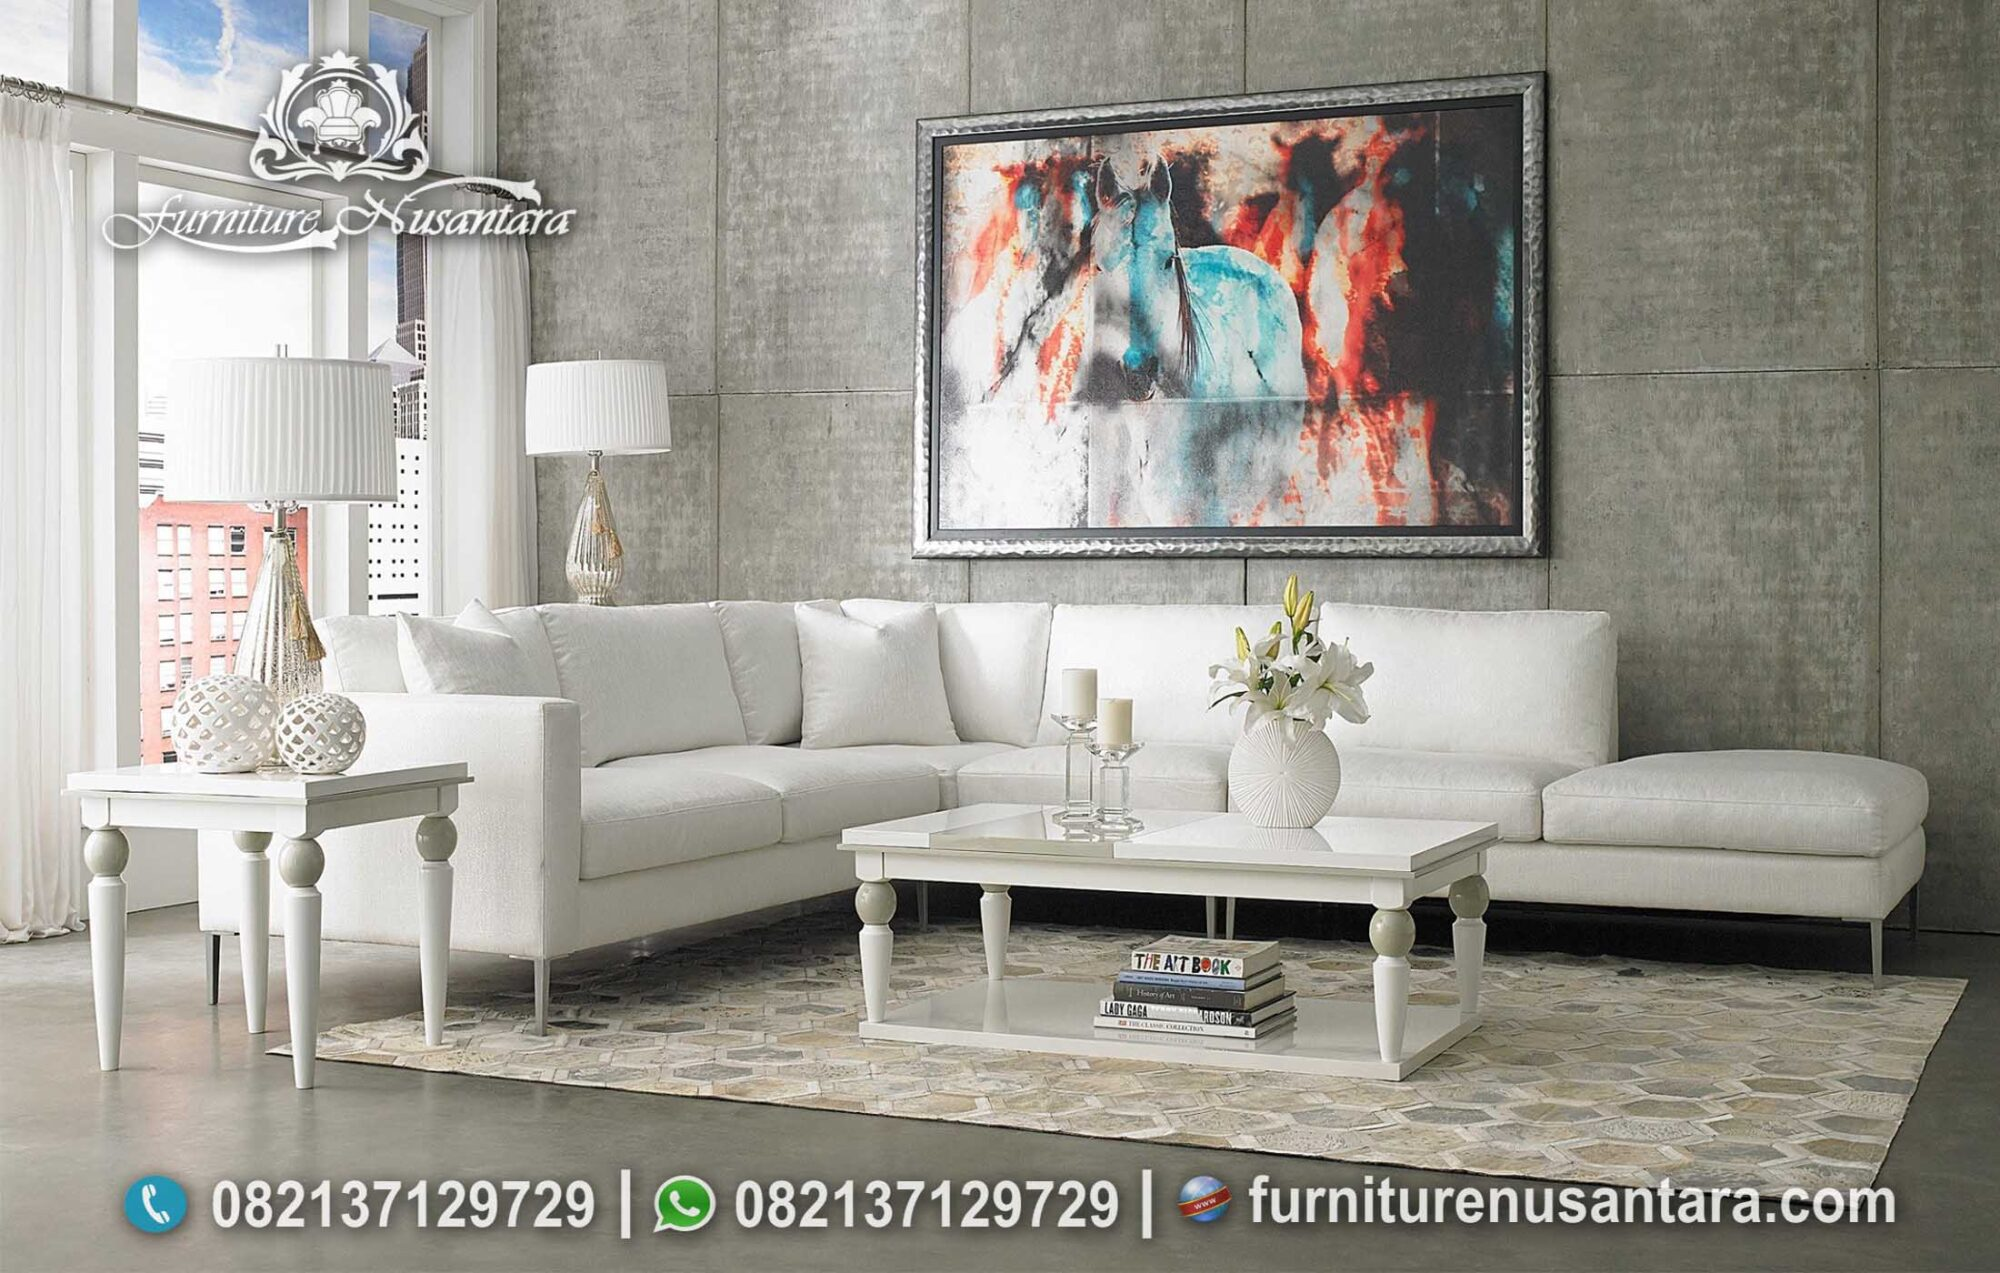 Sofa Sudut Minimalis White Colour Elegan ST-96, Furniture Nusantara